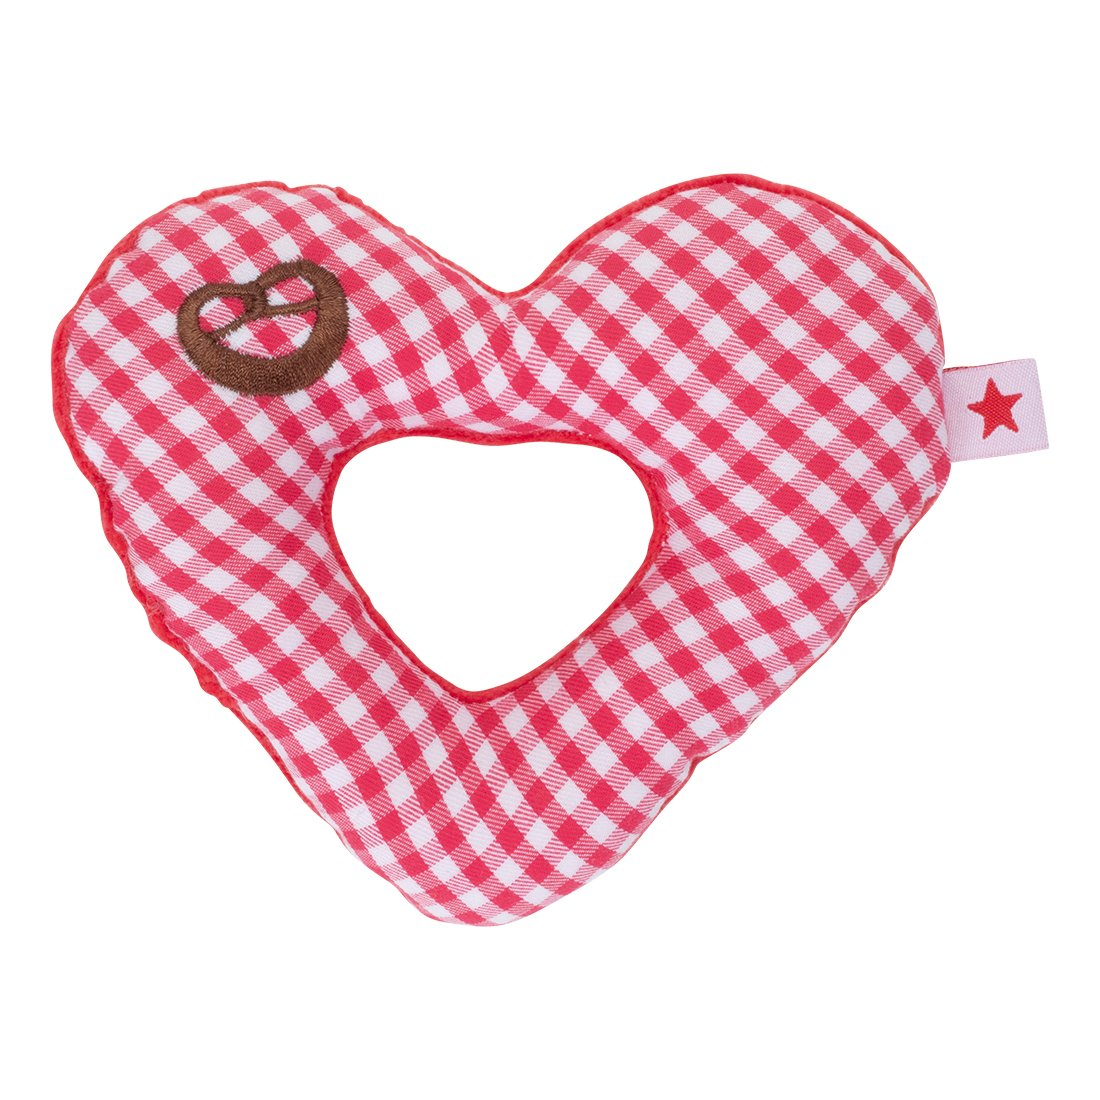 "'Fashy 12048 40 Mein Clutching Toy""Heart Red"